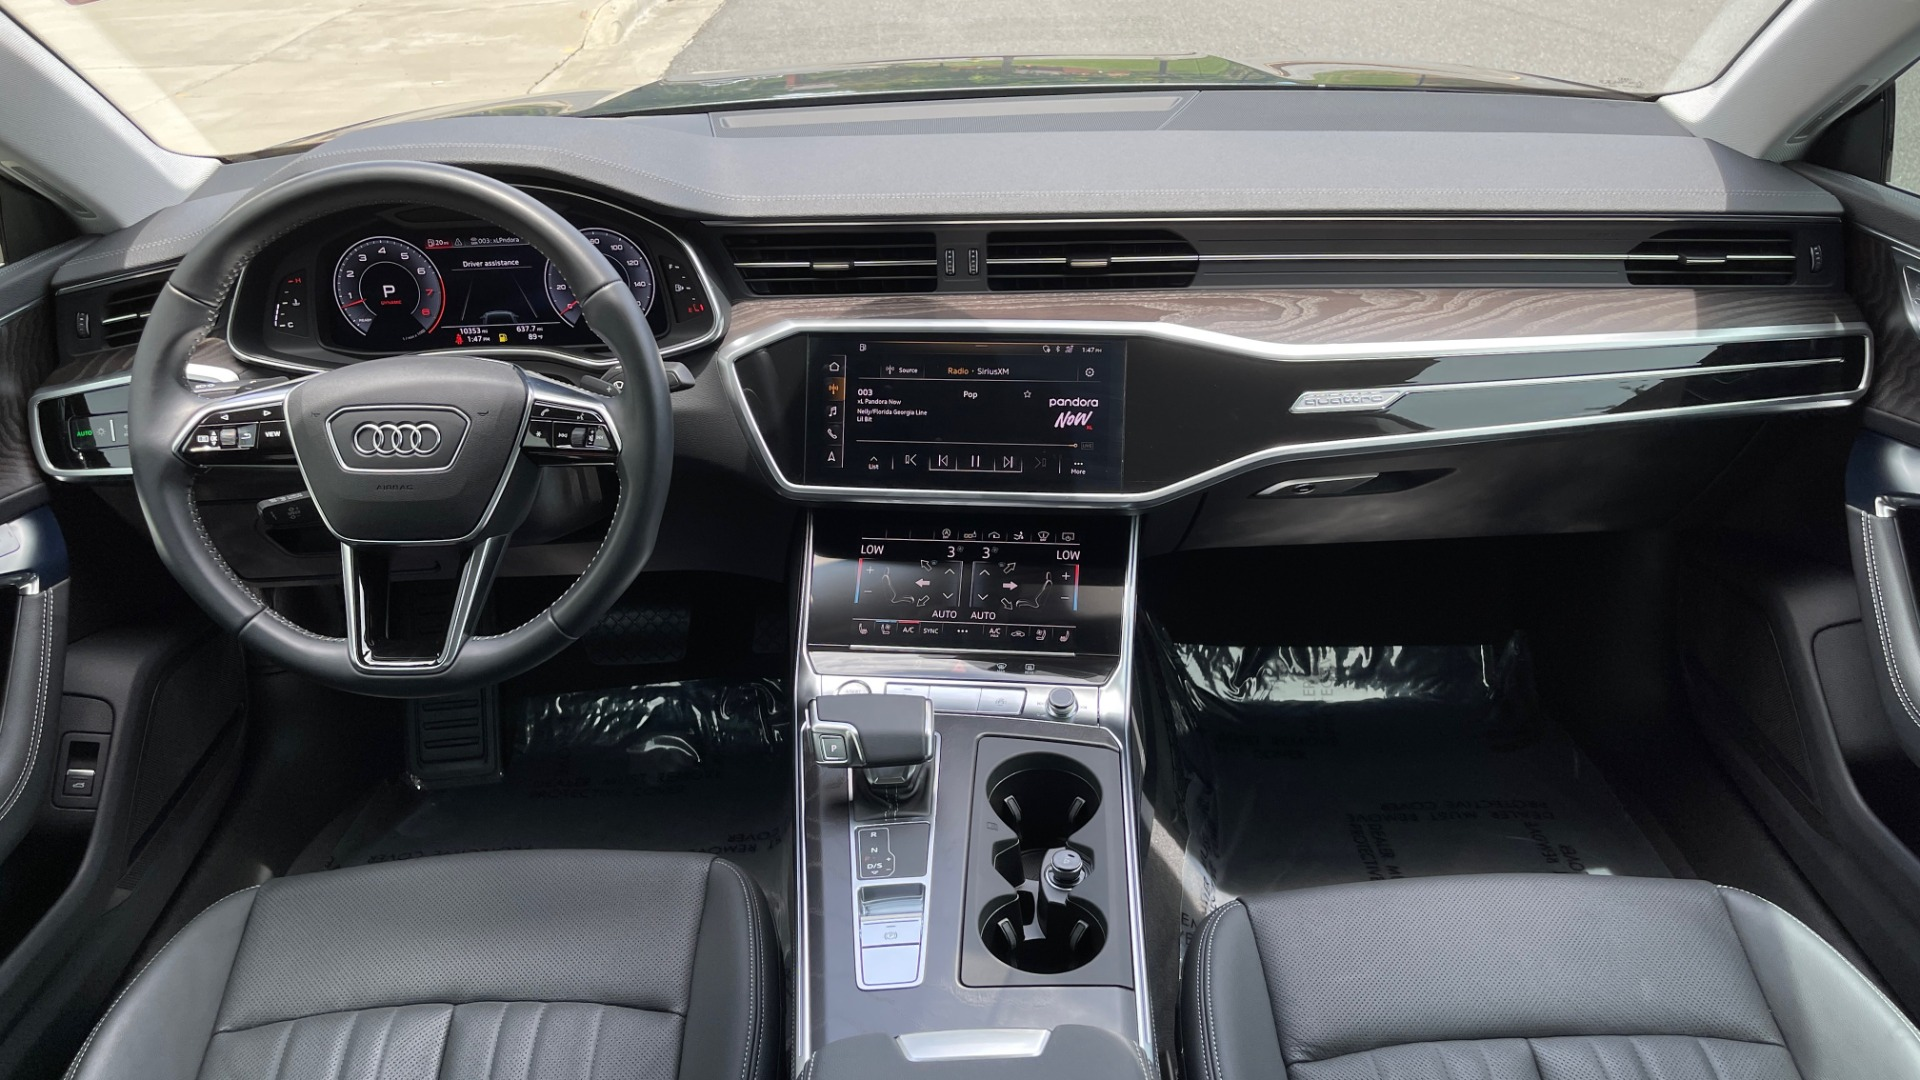 Used 2019 Audi A7 PRESTIGE 55 TFSI 3.0T / NAV / B&O SND / SUNROOF / S-LINE / 21IN WHLS / REAR for sale $66,995 at Formula Imports in Charlotte NC 28227 66